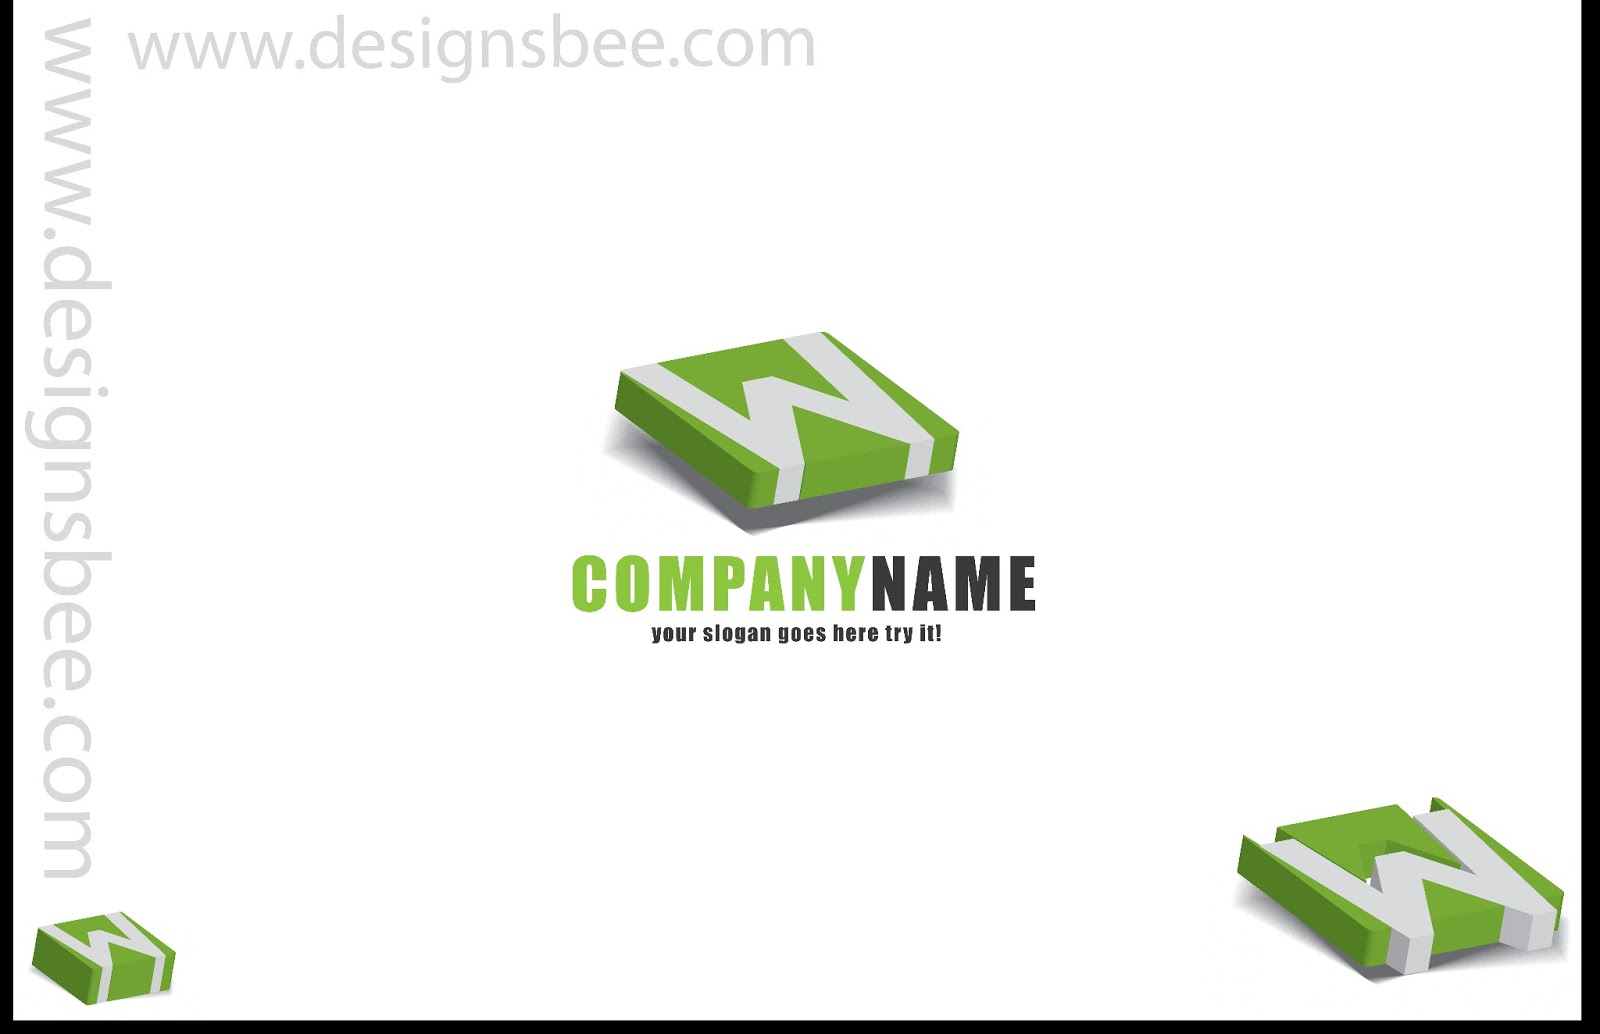 Free Graphic Design Software  Logo Maker Online  Photo